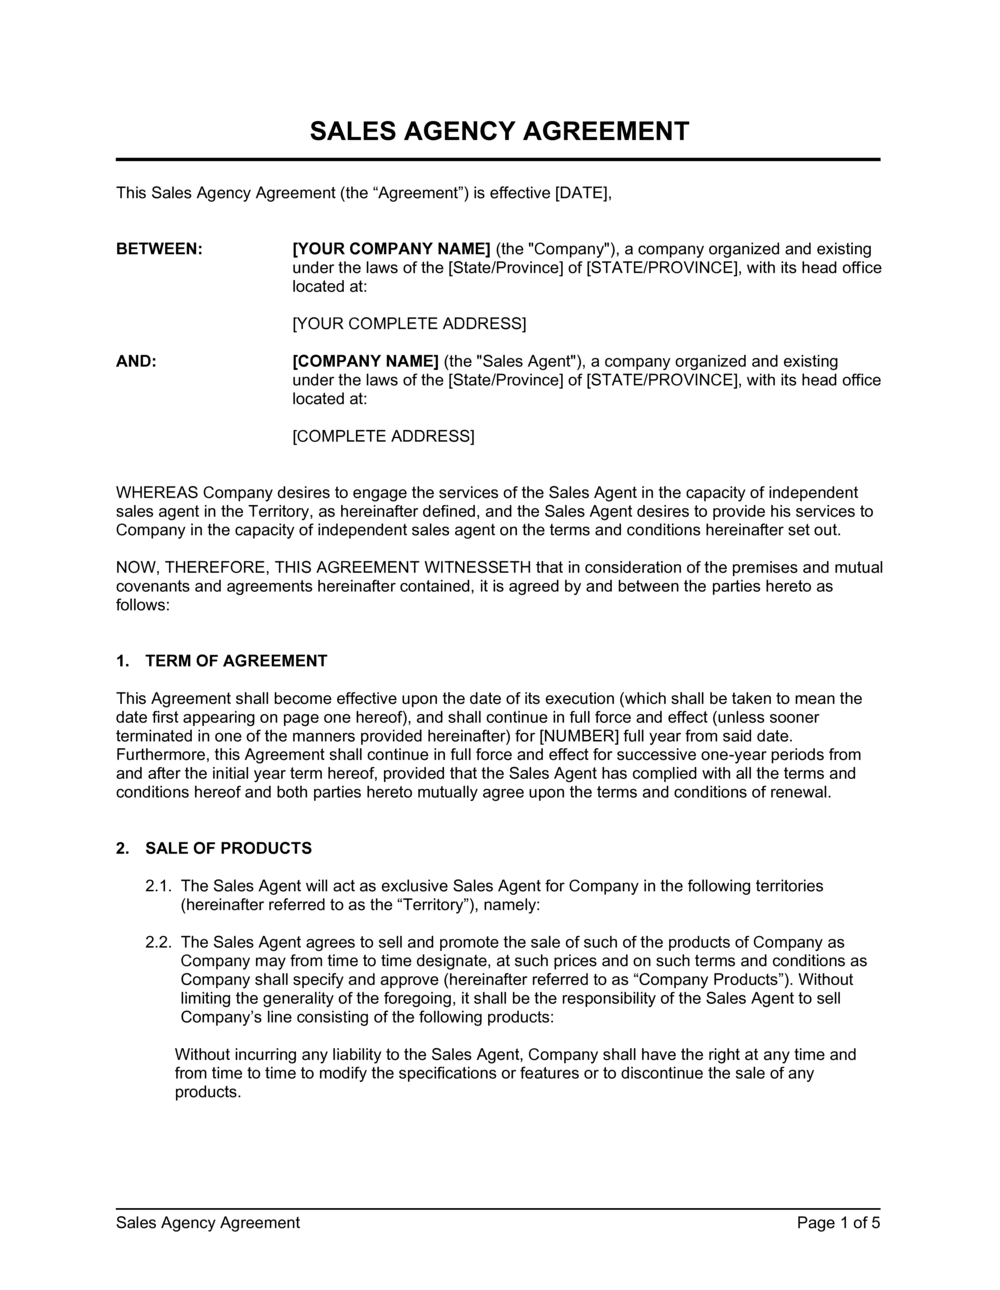 Business-in-a-Box's Sales Agency Agreement With Trademarks protection Template